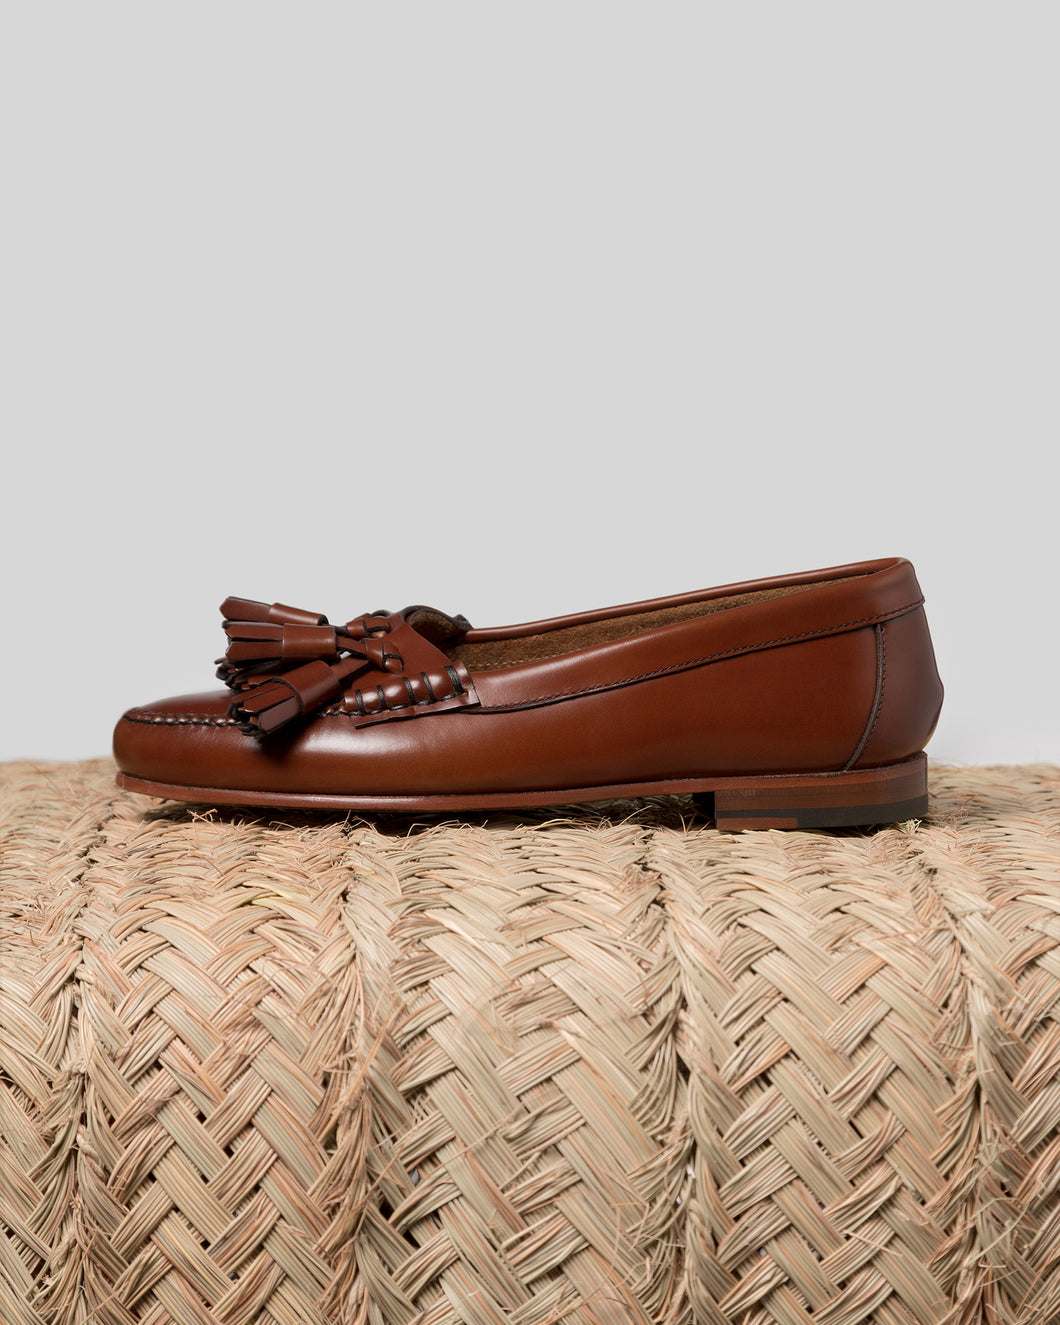 SIERRA - Tasseled pump Moccasin